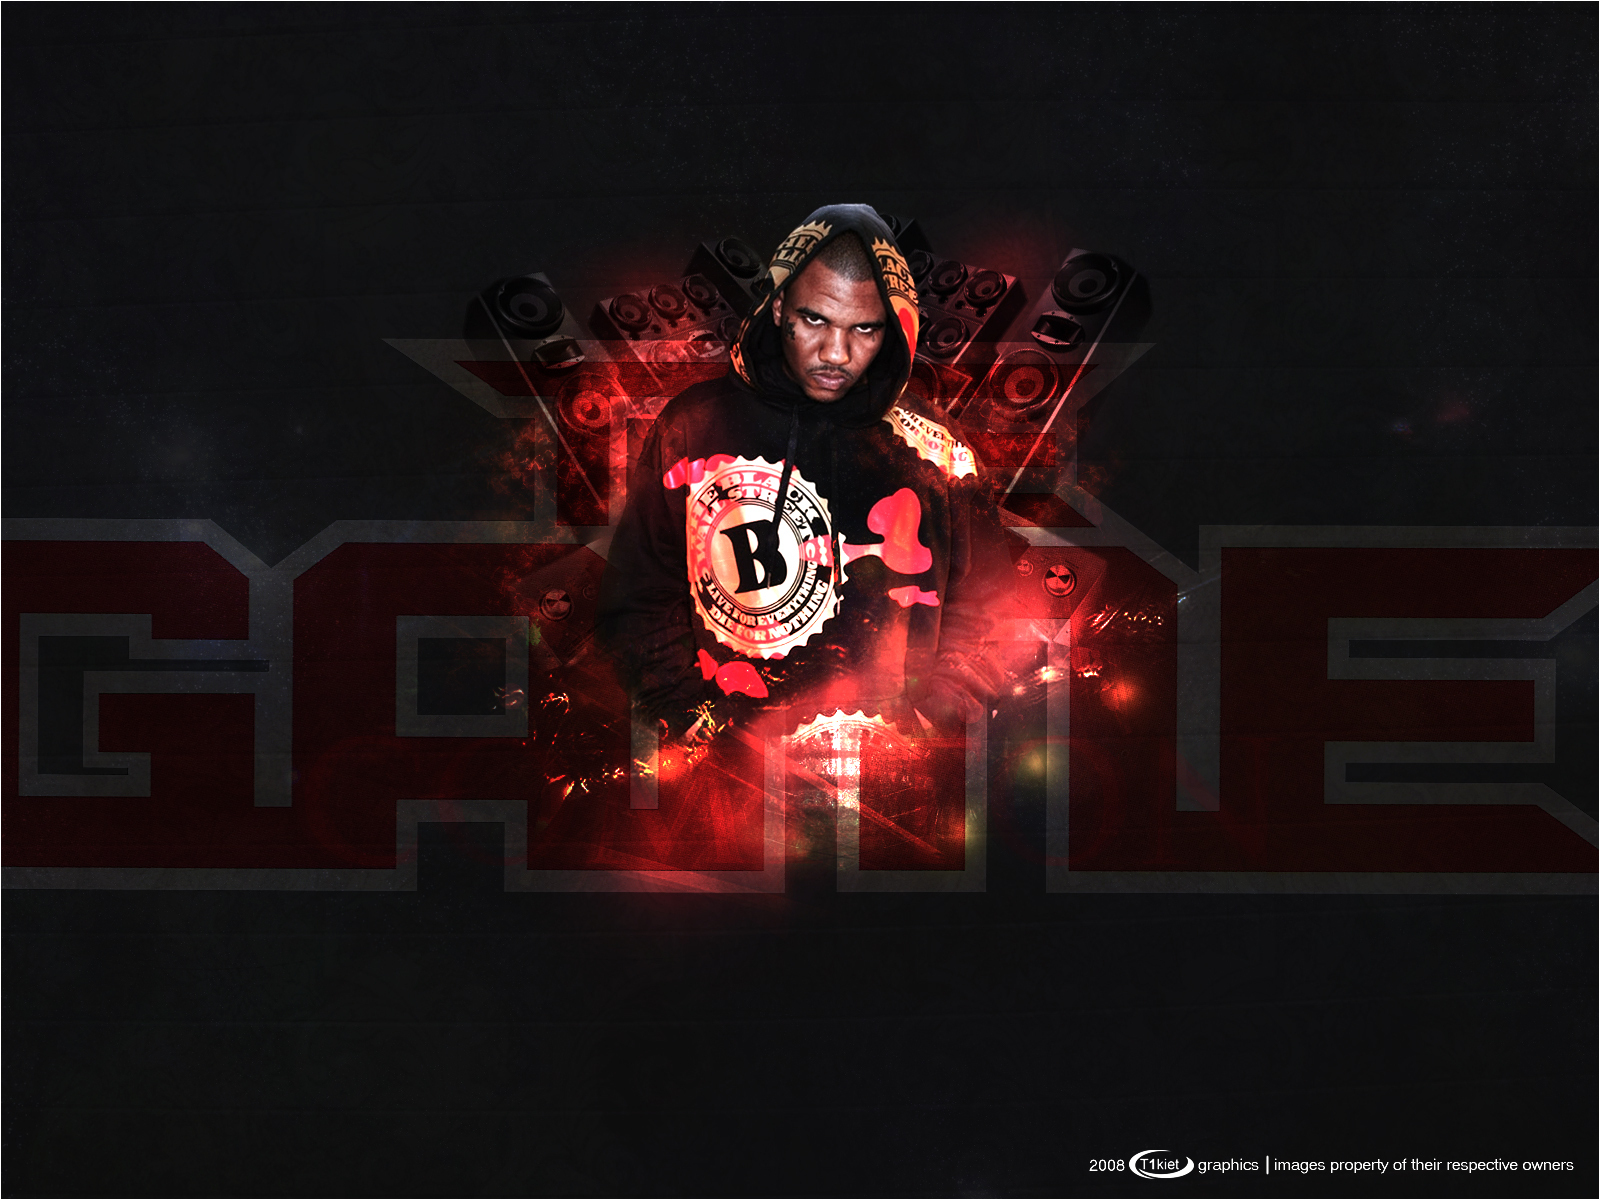 The Game MC images The Game wallpaper HD wallpaper and 1600x1200